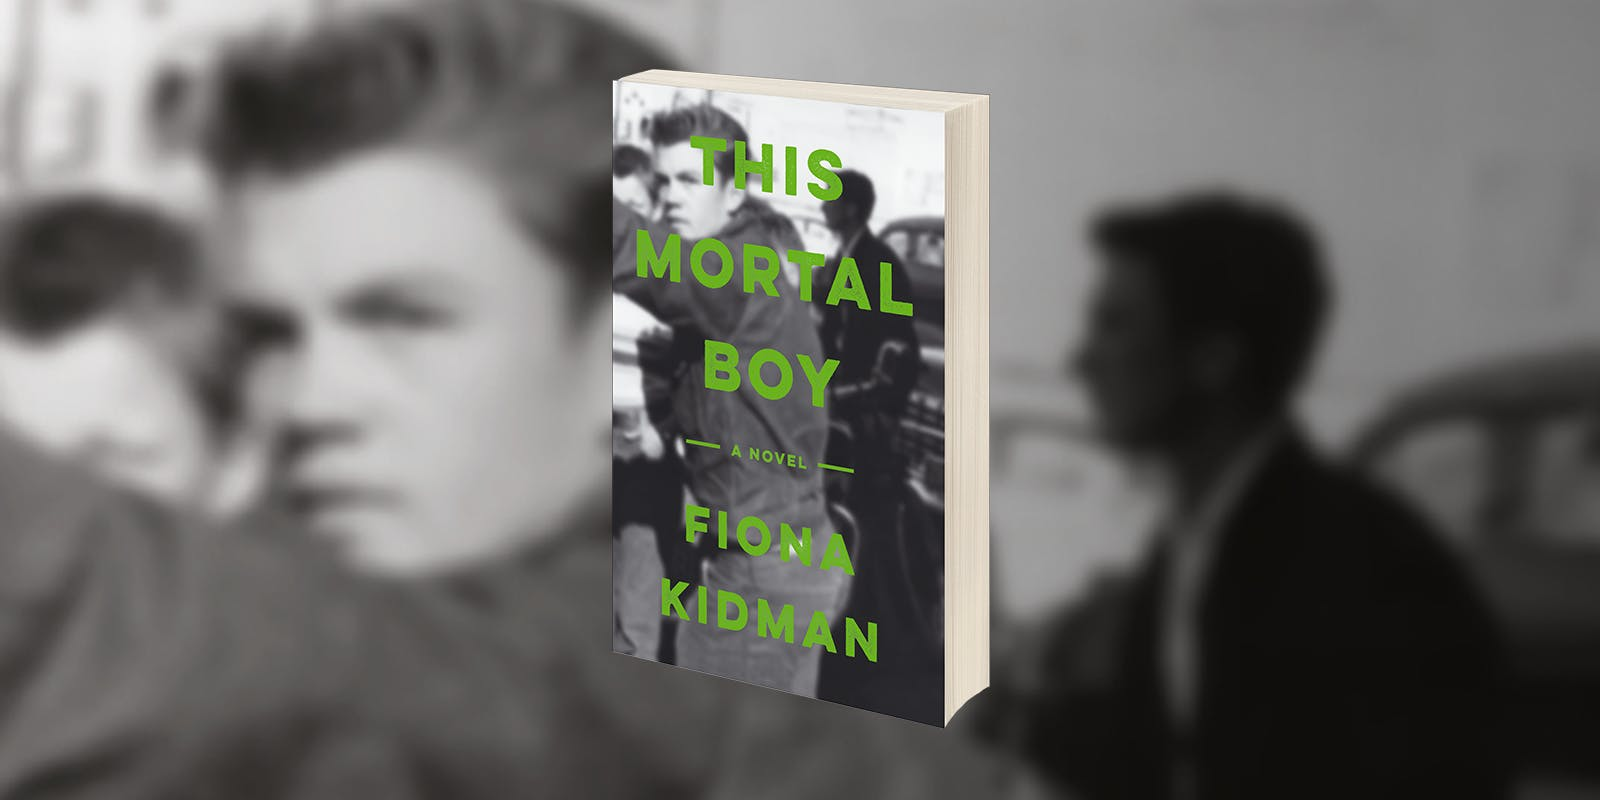 This Mortal Boy - book club guide